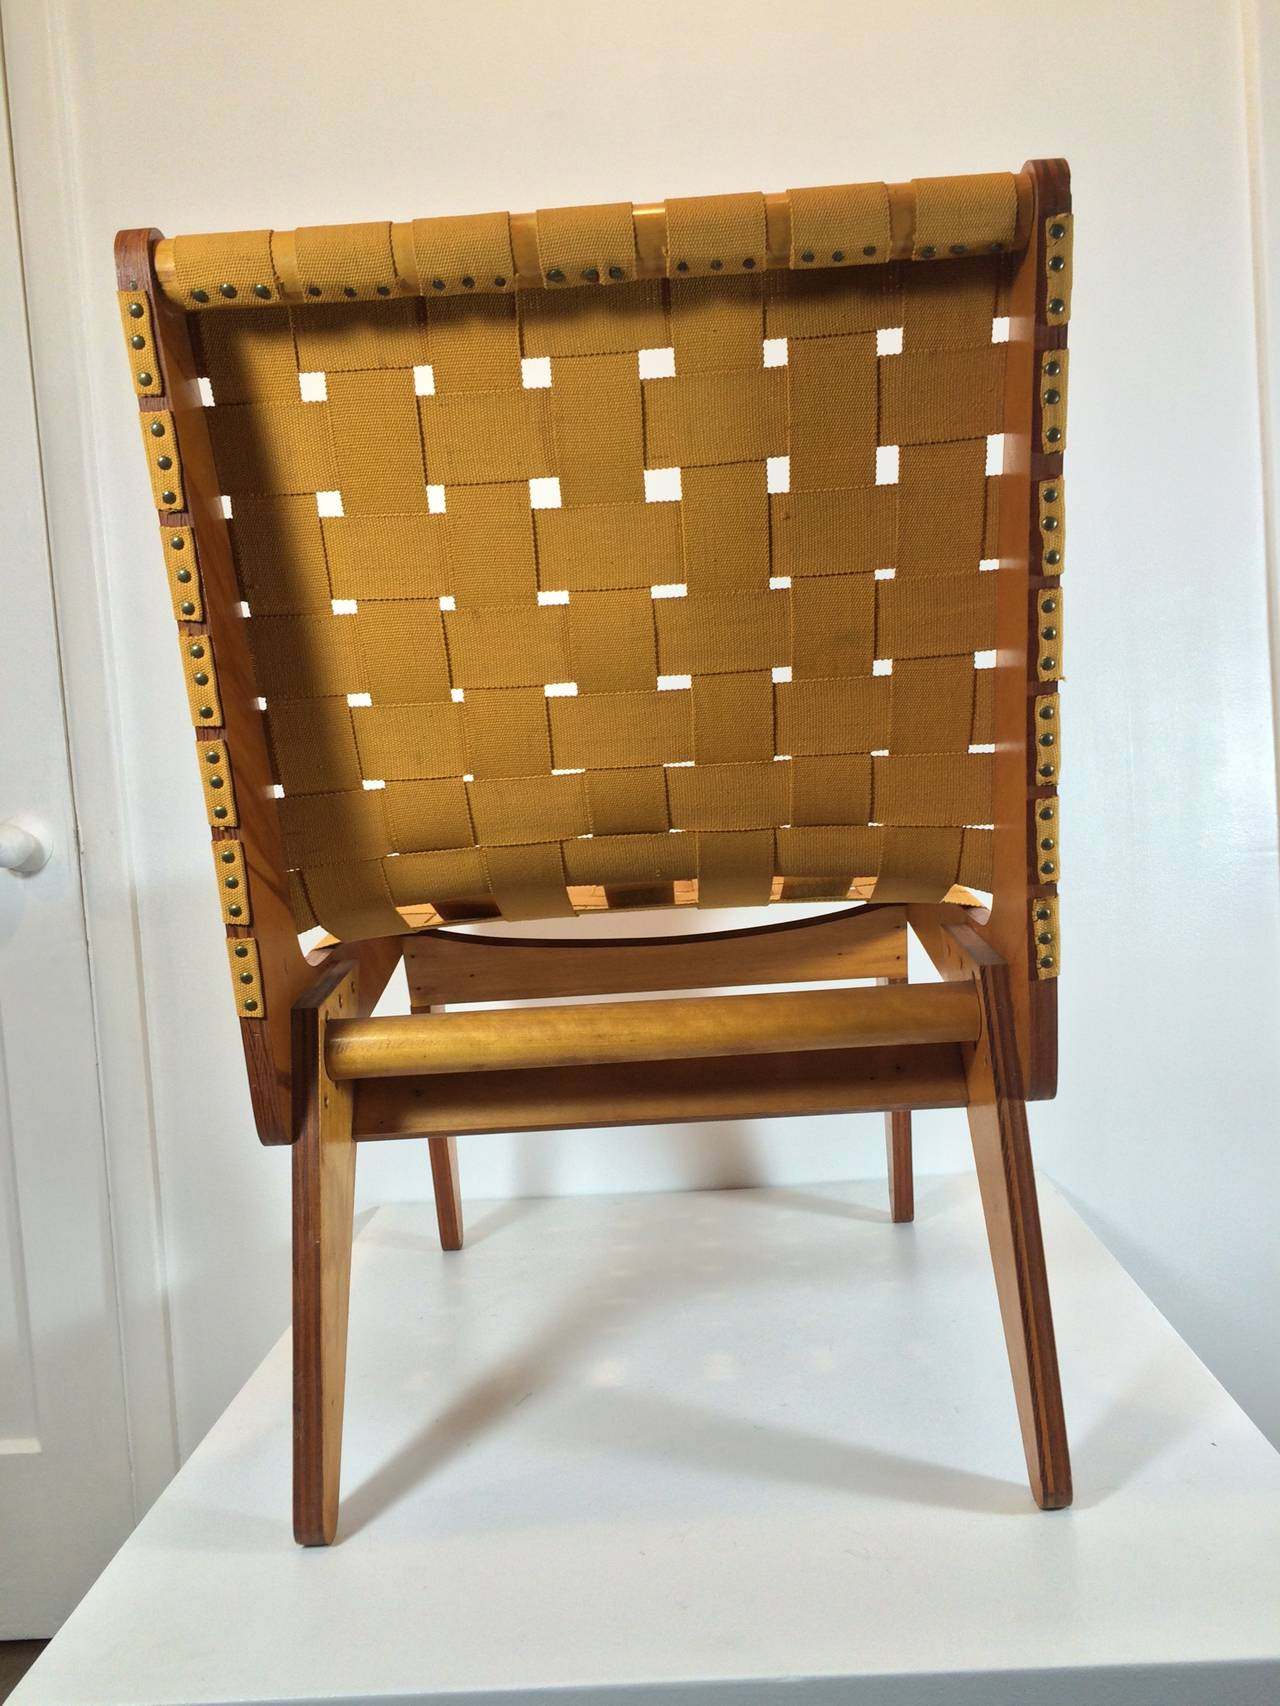 1949 Klaus Grabe Handmade Lounge Chair 5